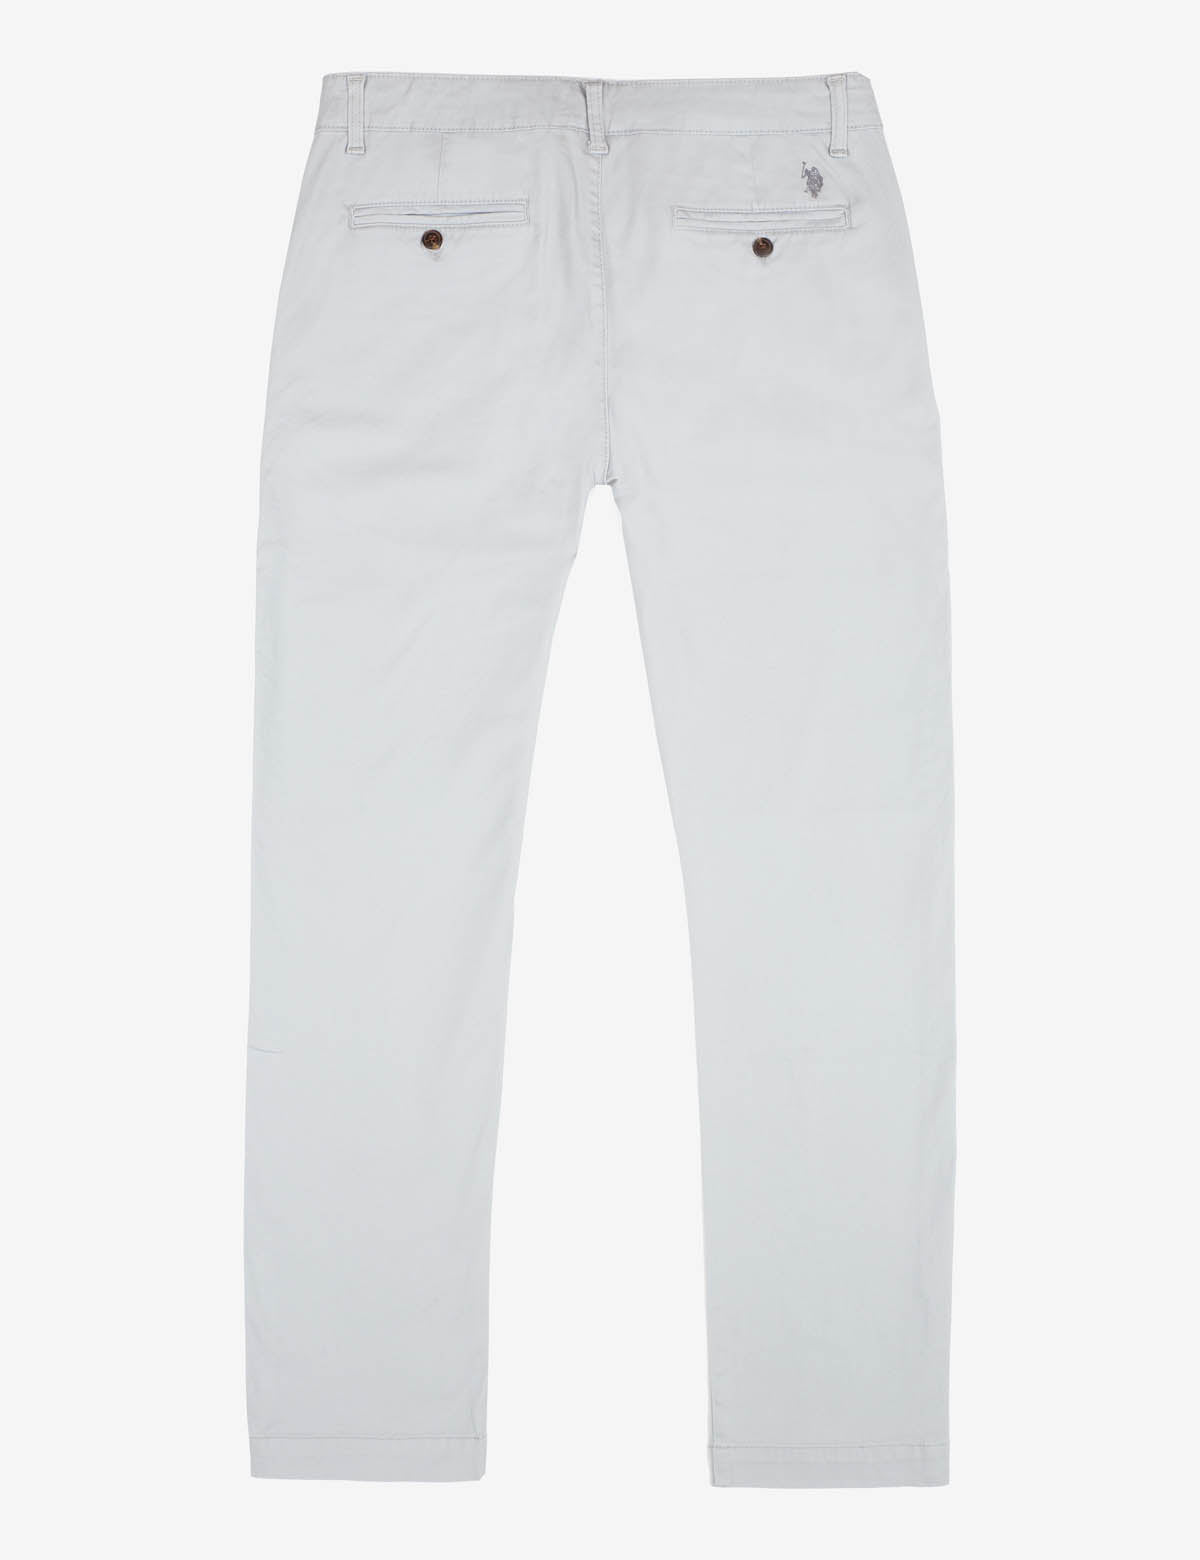 STRETCH TWILL CHINO PANTS - U.S. Polo Assn.